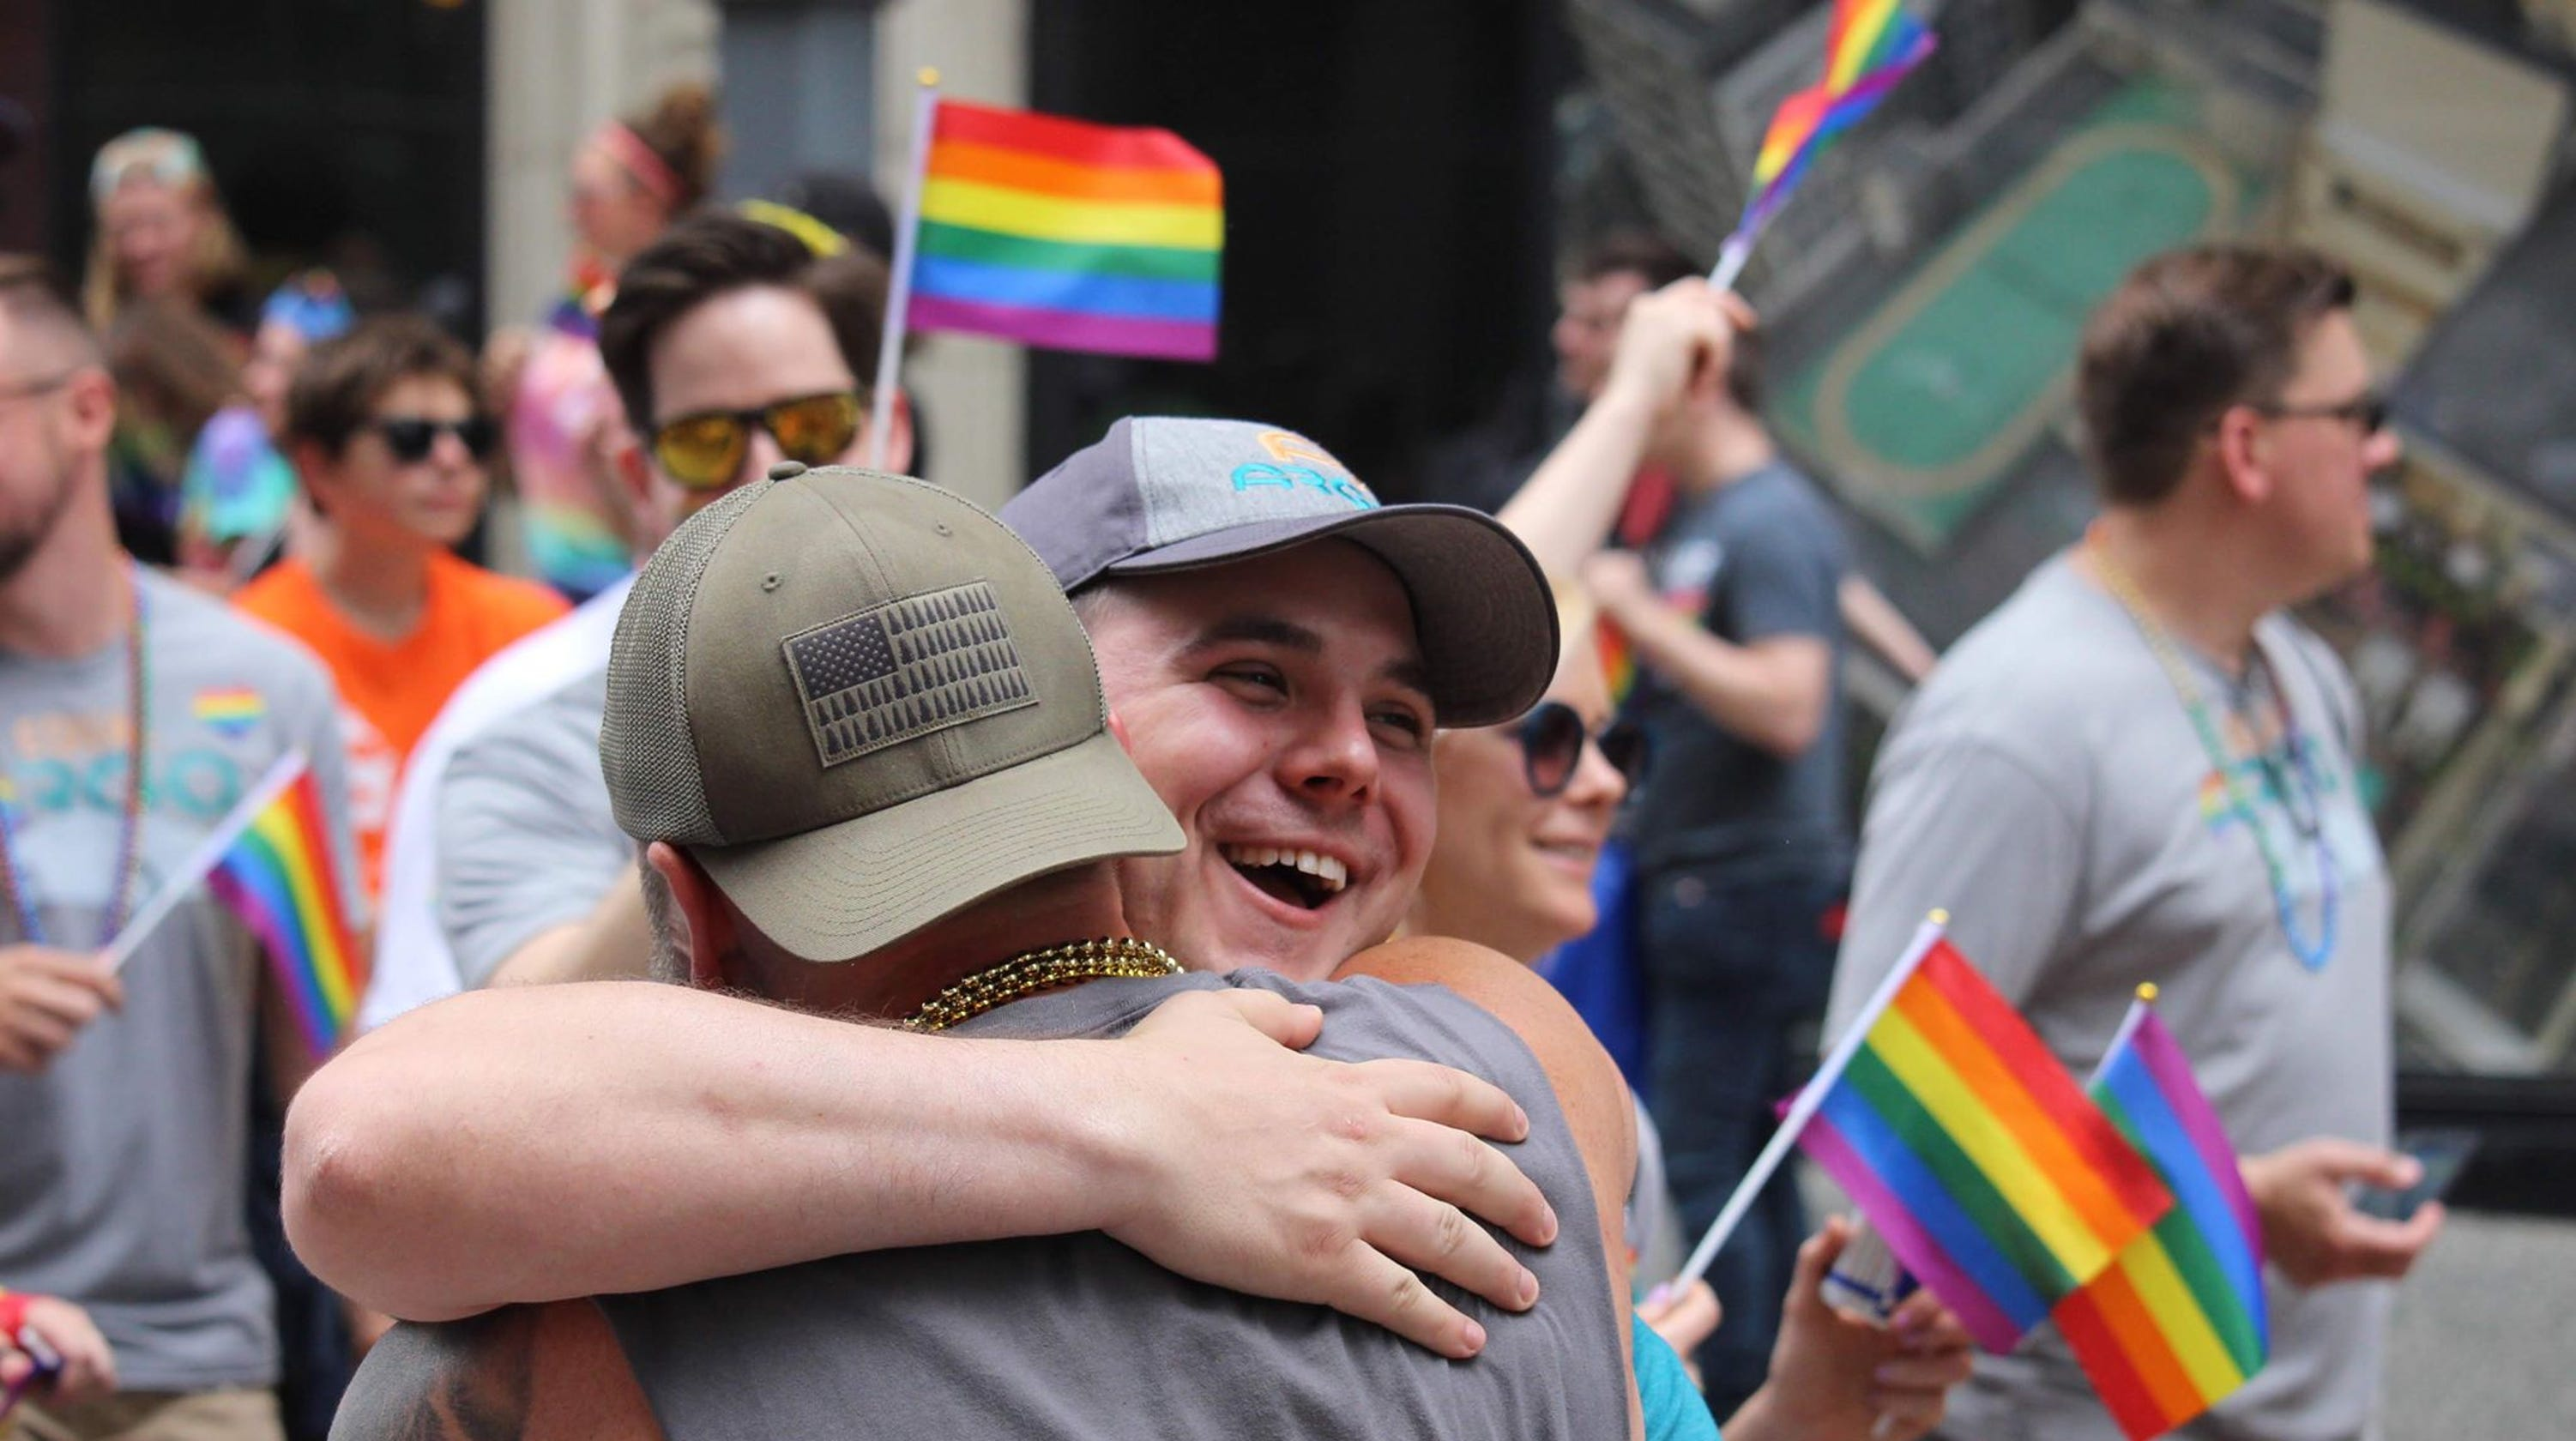 Dad hugs at Pride parade show how hard family rejection hits